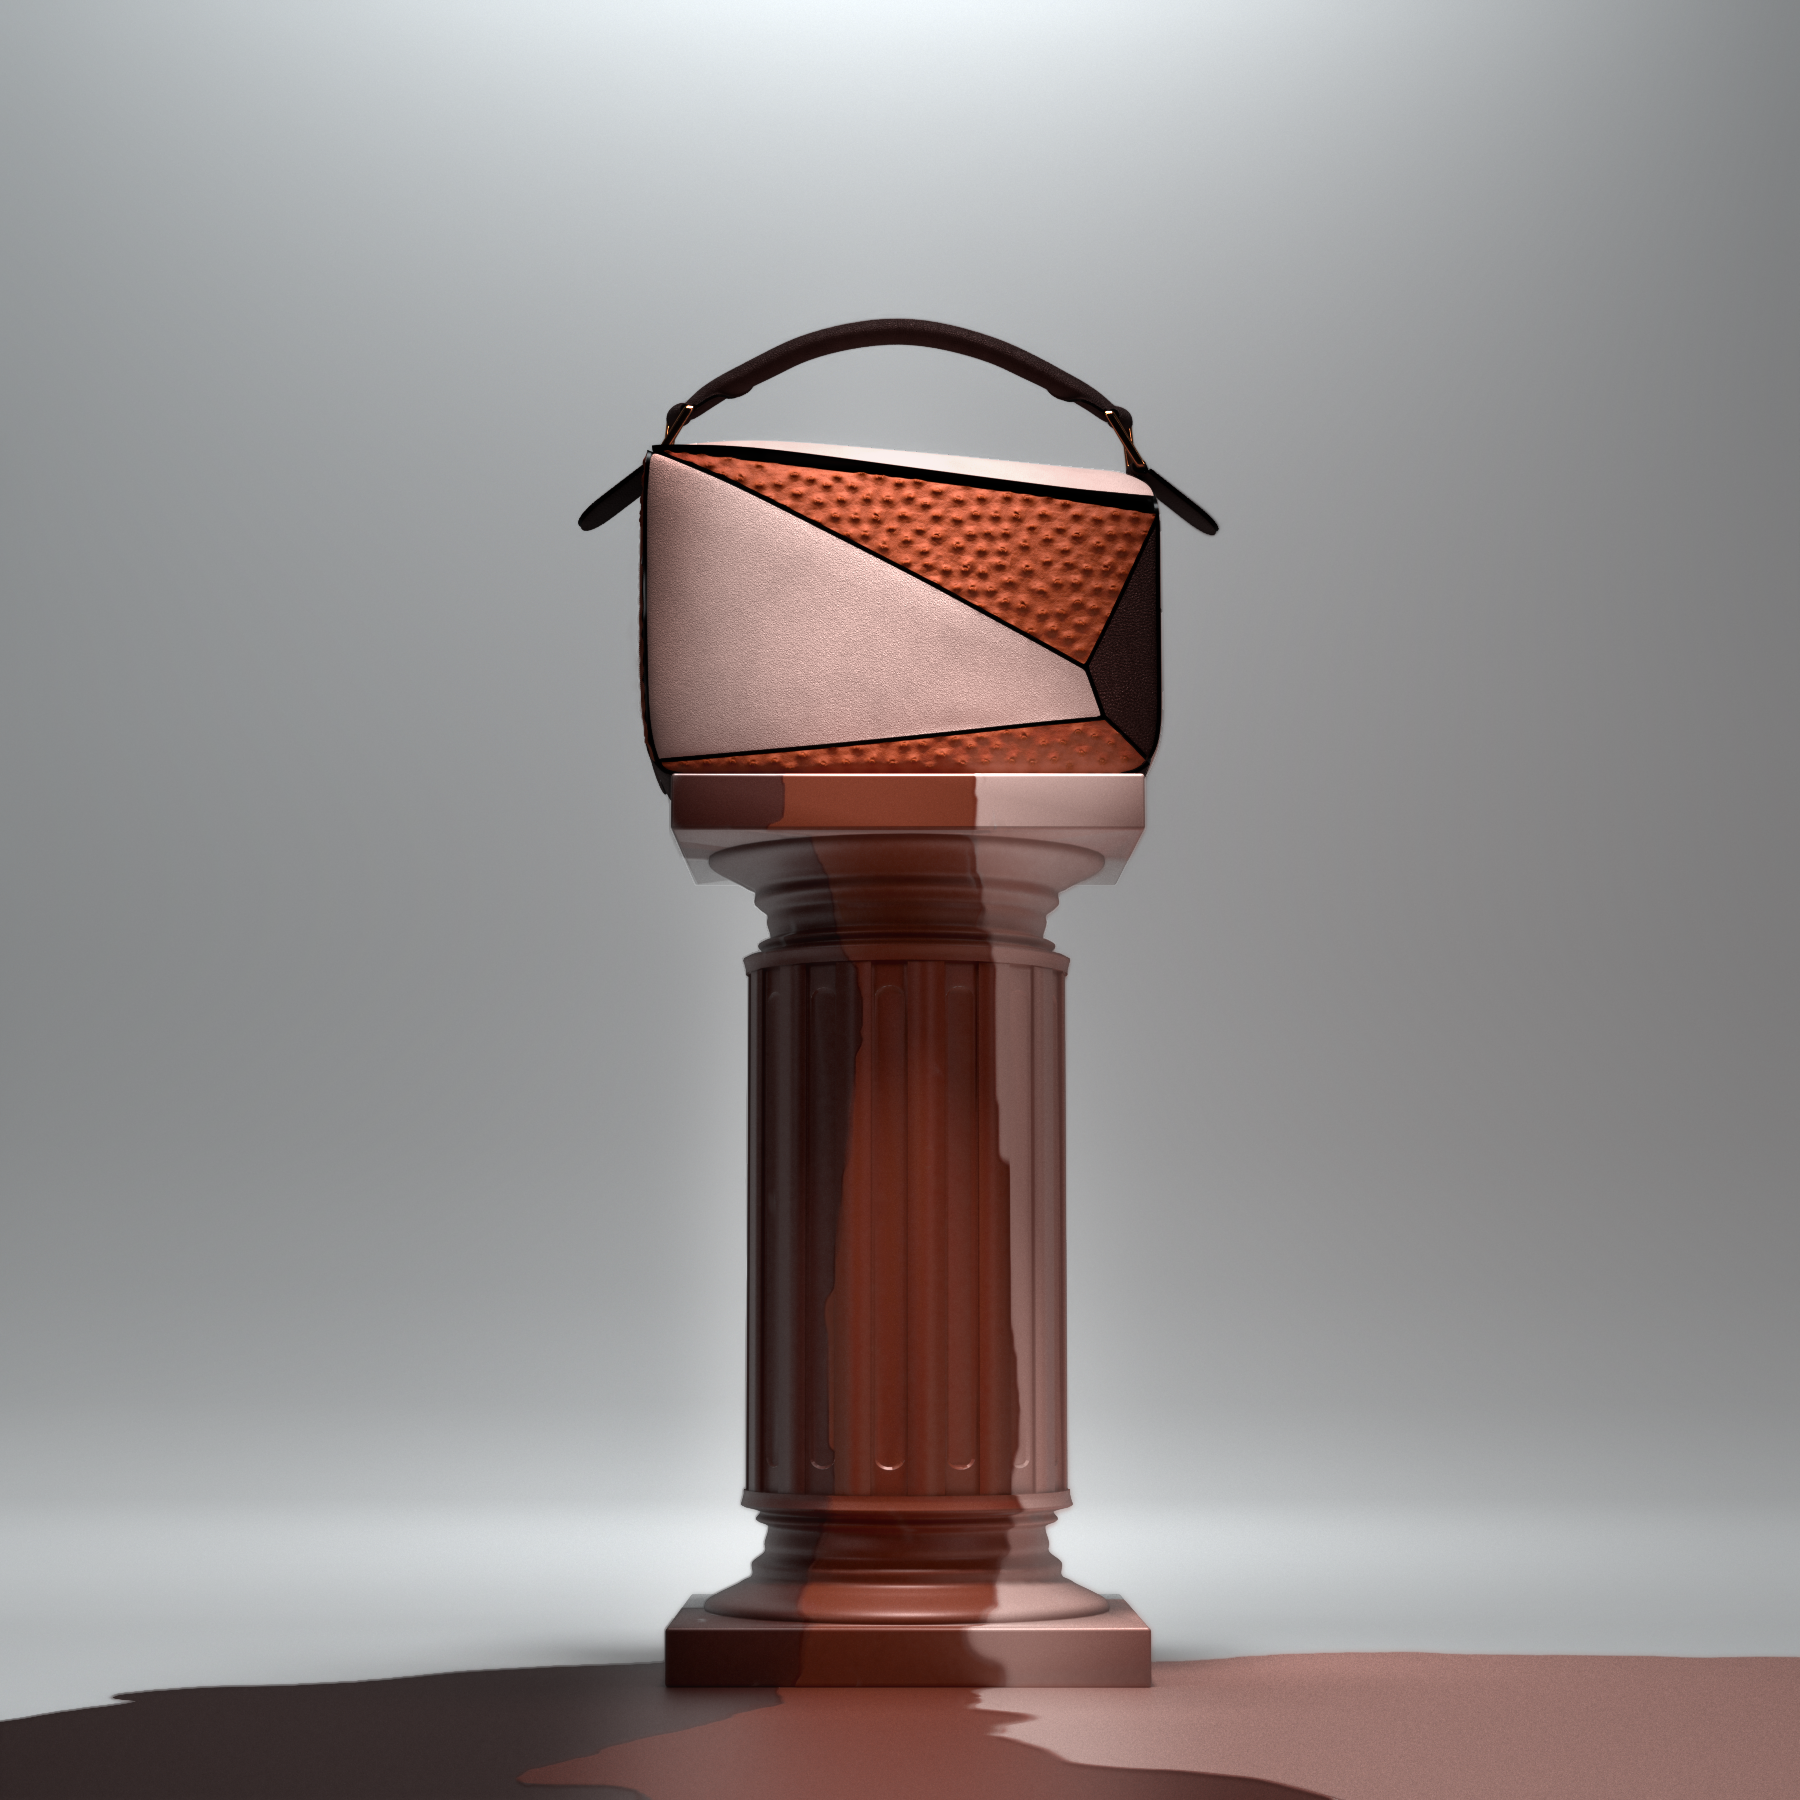 Puzzle Bag in brown and beige tones on top of a roman column